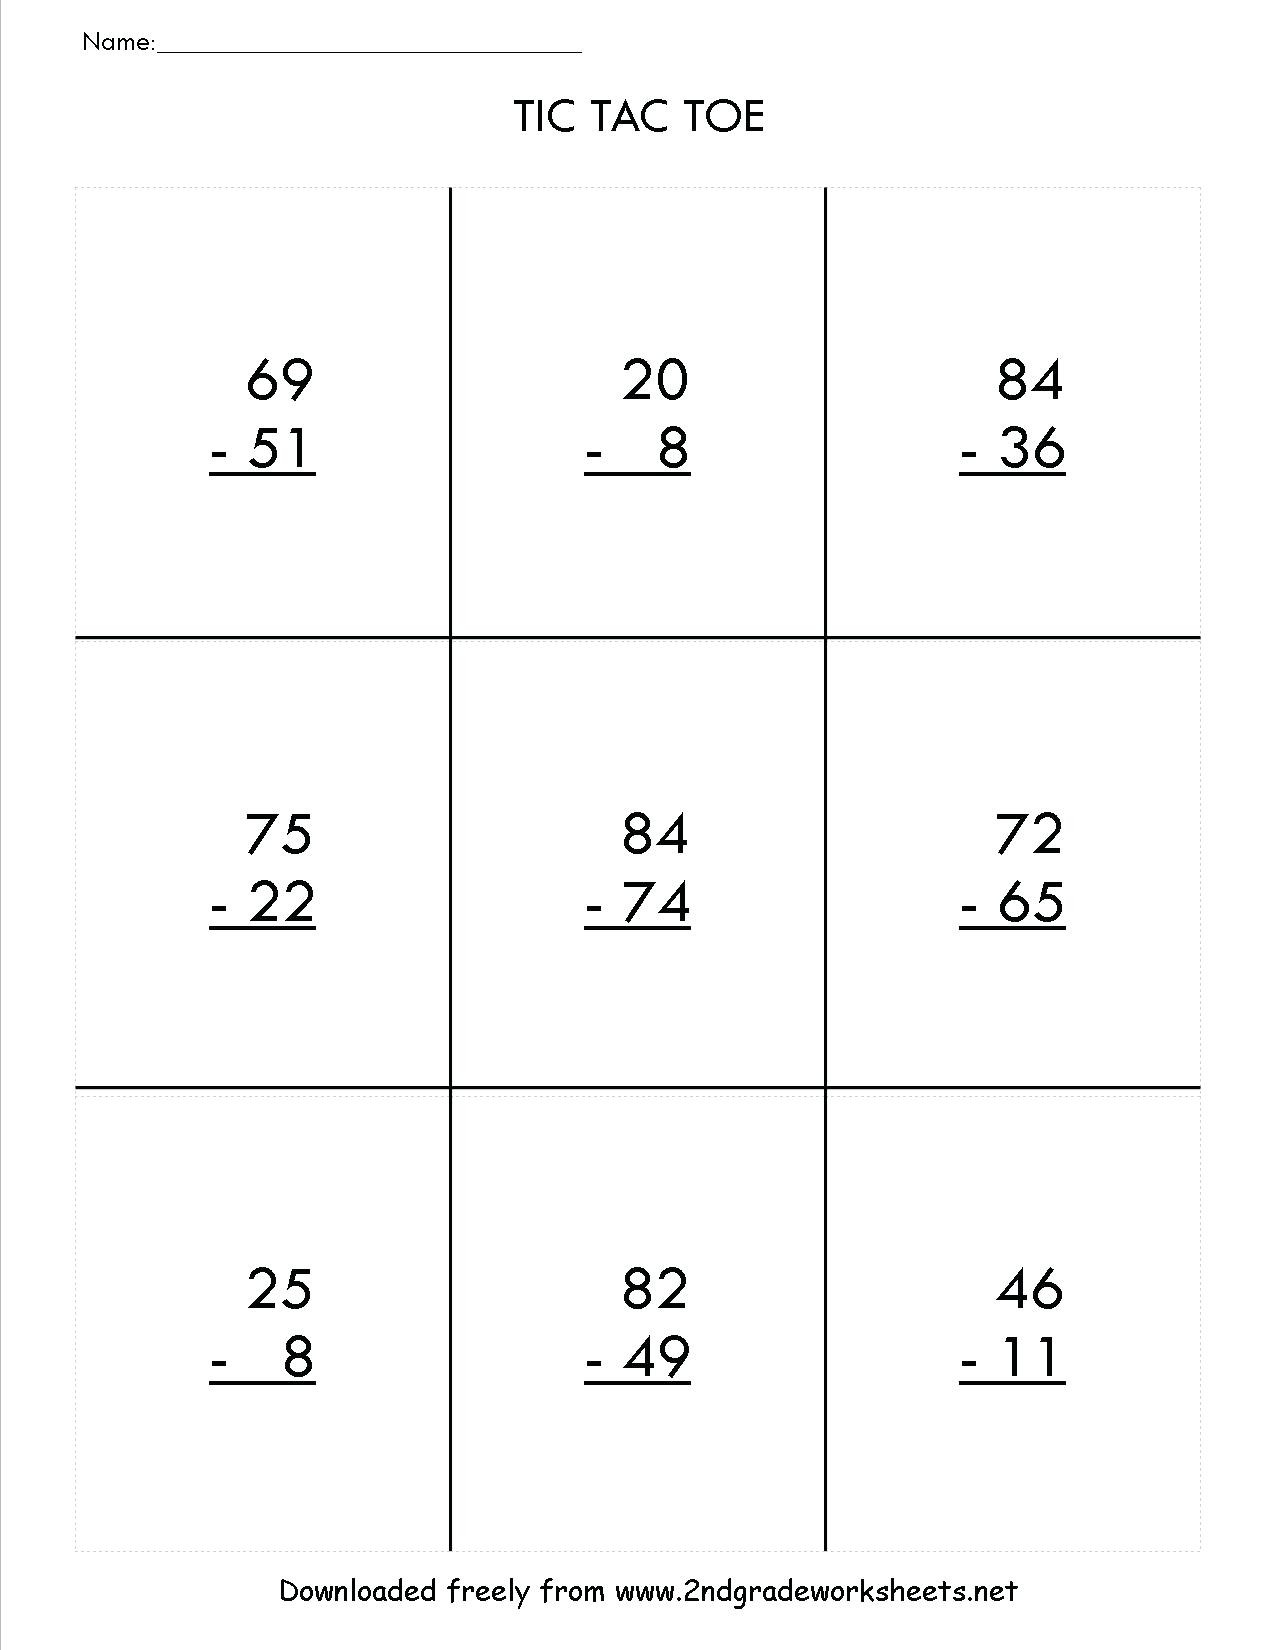 hight resolution of 3 Free Math Worksheets Second Grade 2 Subtraction Subtract Regroup Across  Zeros - apocalomegaproductions.com